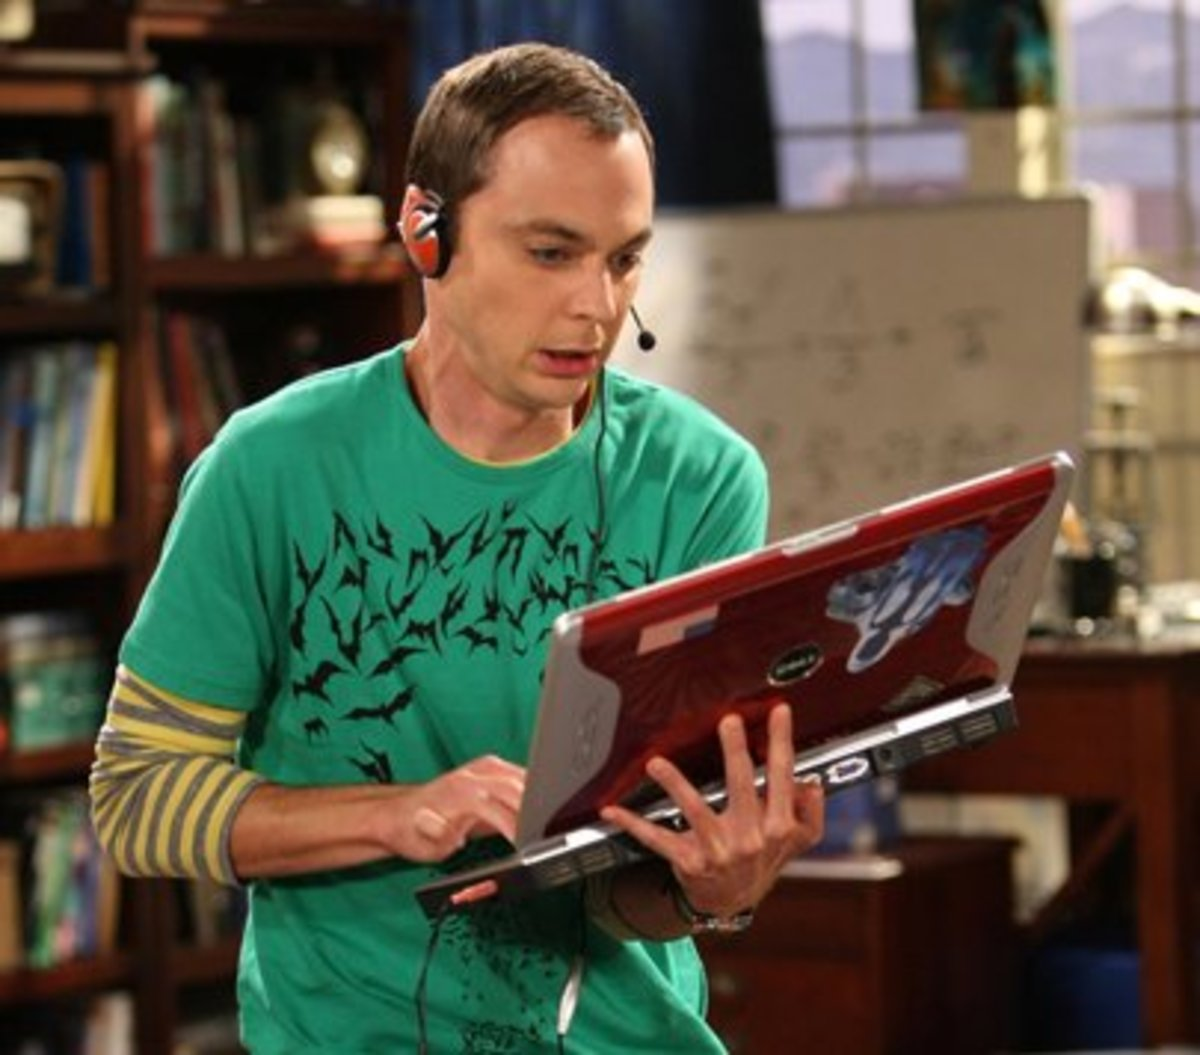 Dr. Sheldon Cooper aka Sheldor of Azeroth in World of Warcraft or Sheldor the Conqueror in Age of Conan